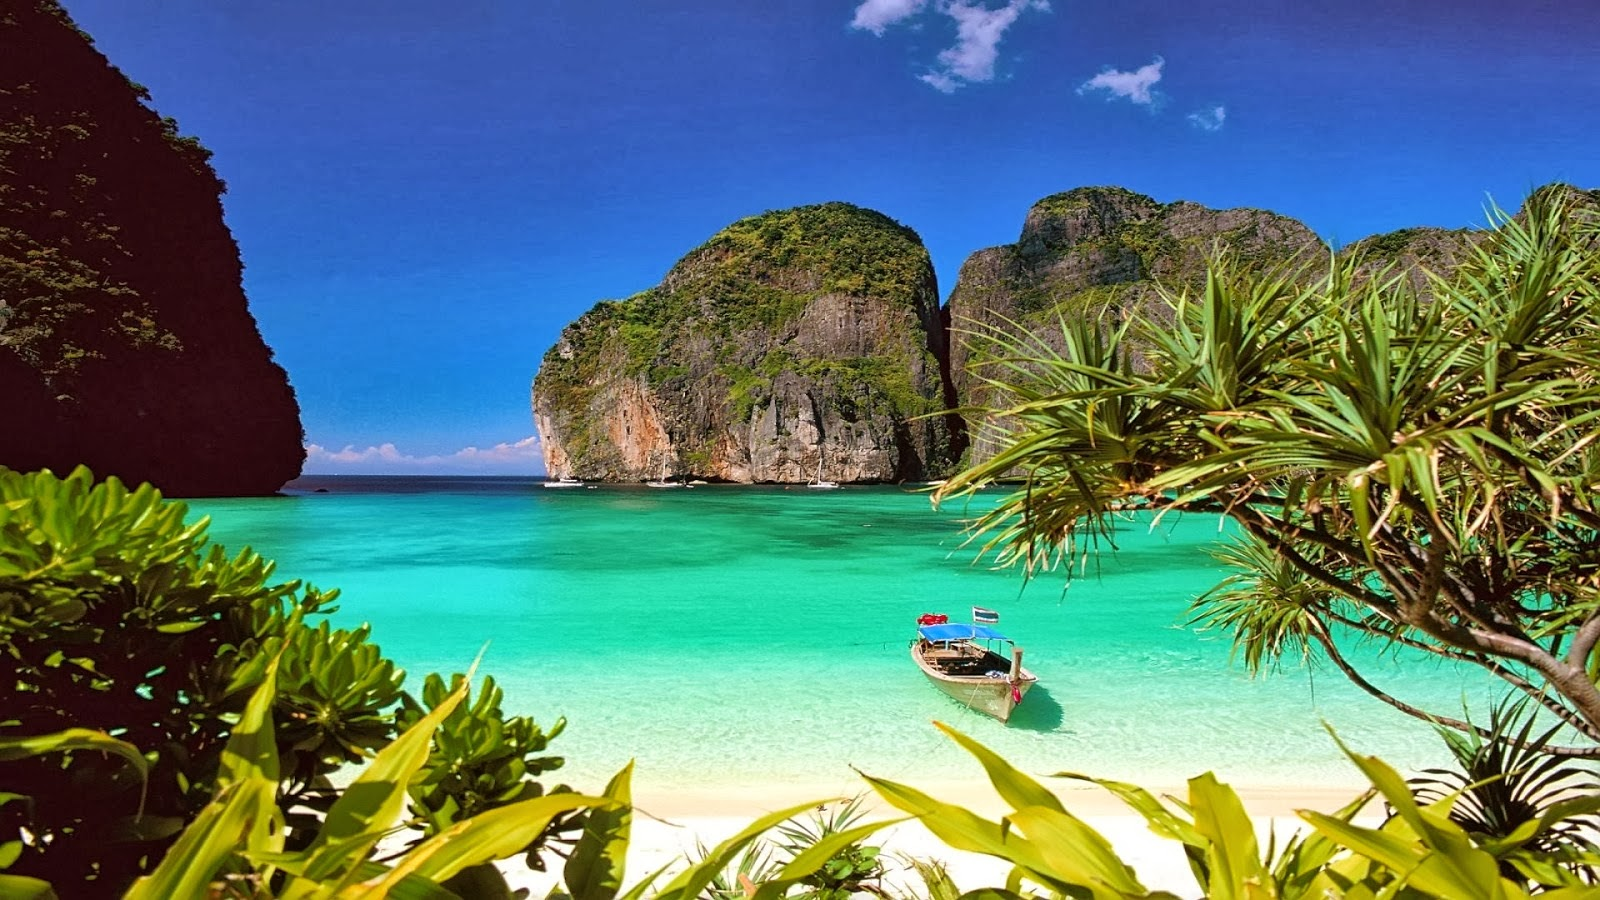 HD WALLPAPERS Download Thailand Beach HD Wallpapers 1600x900